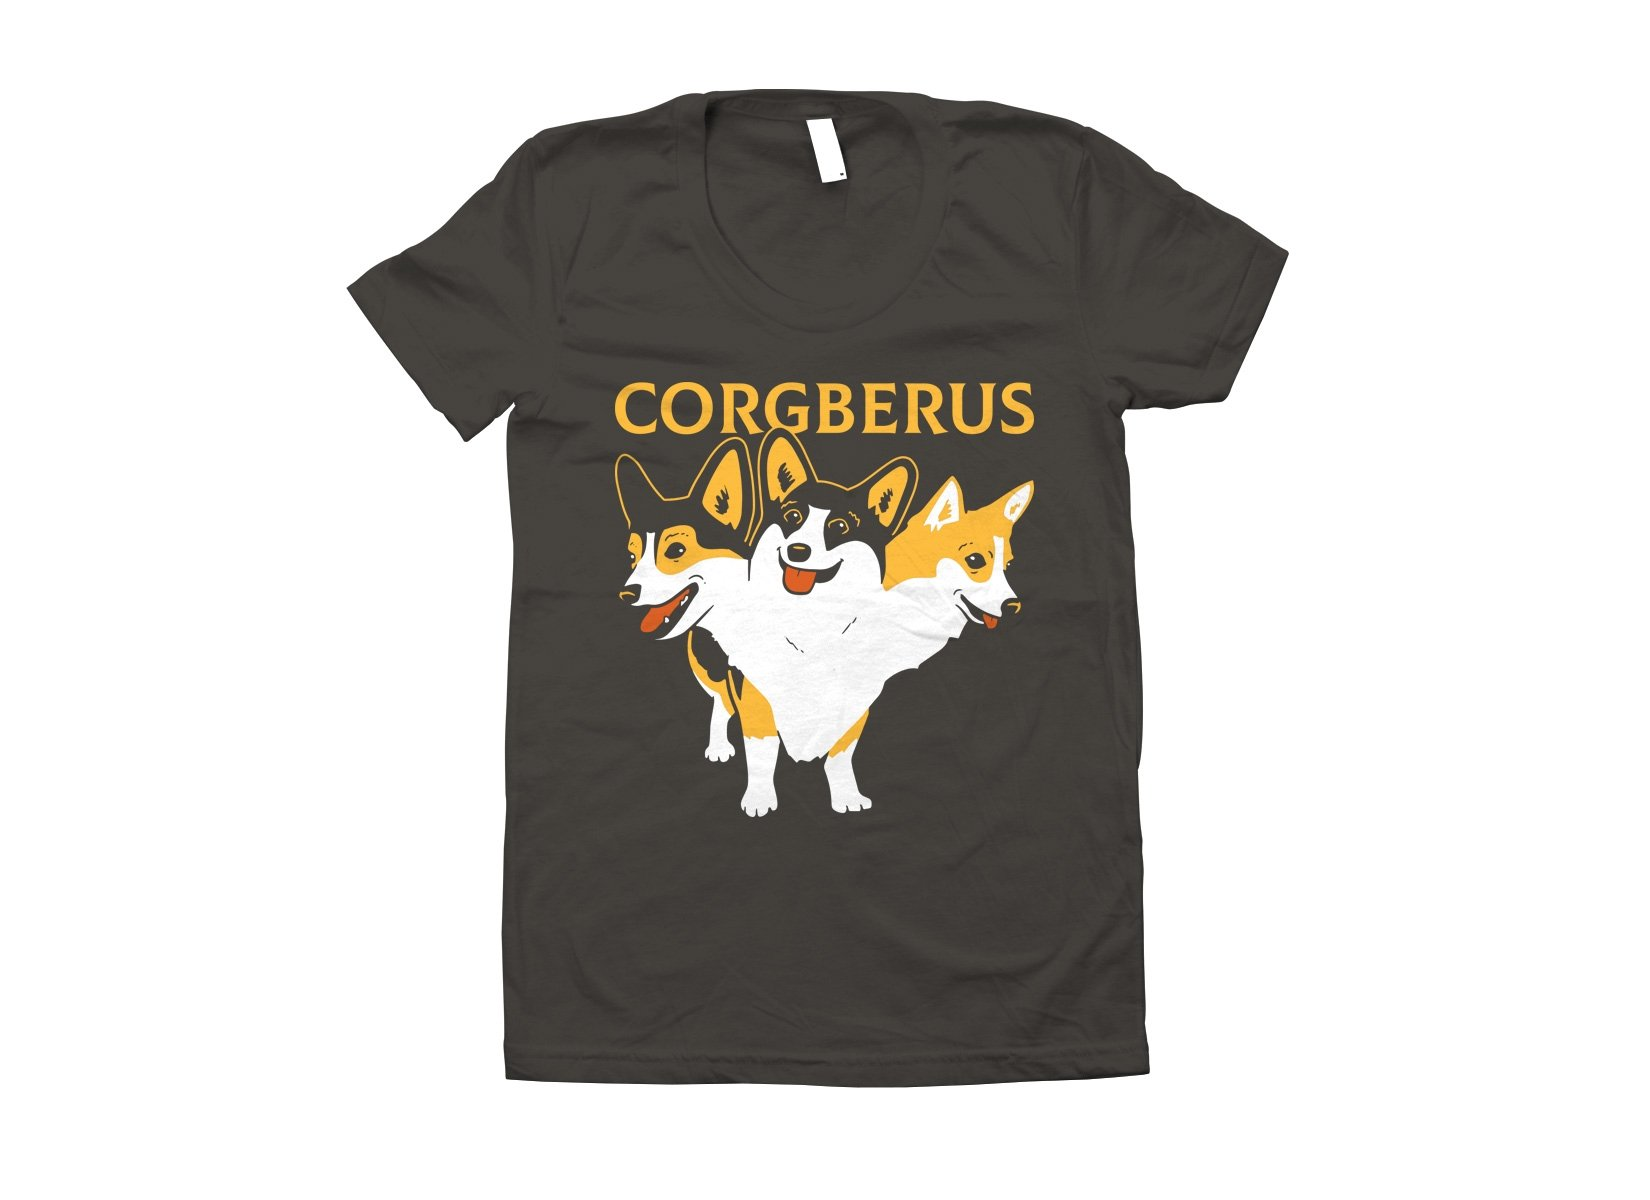 Corgberus on Juniors T-Shirt